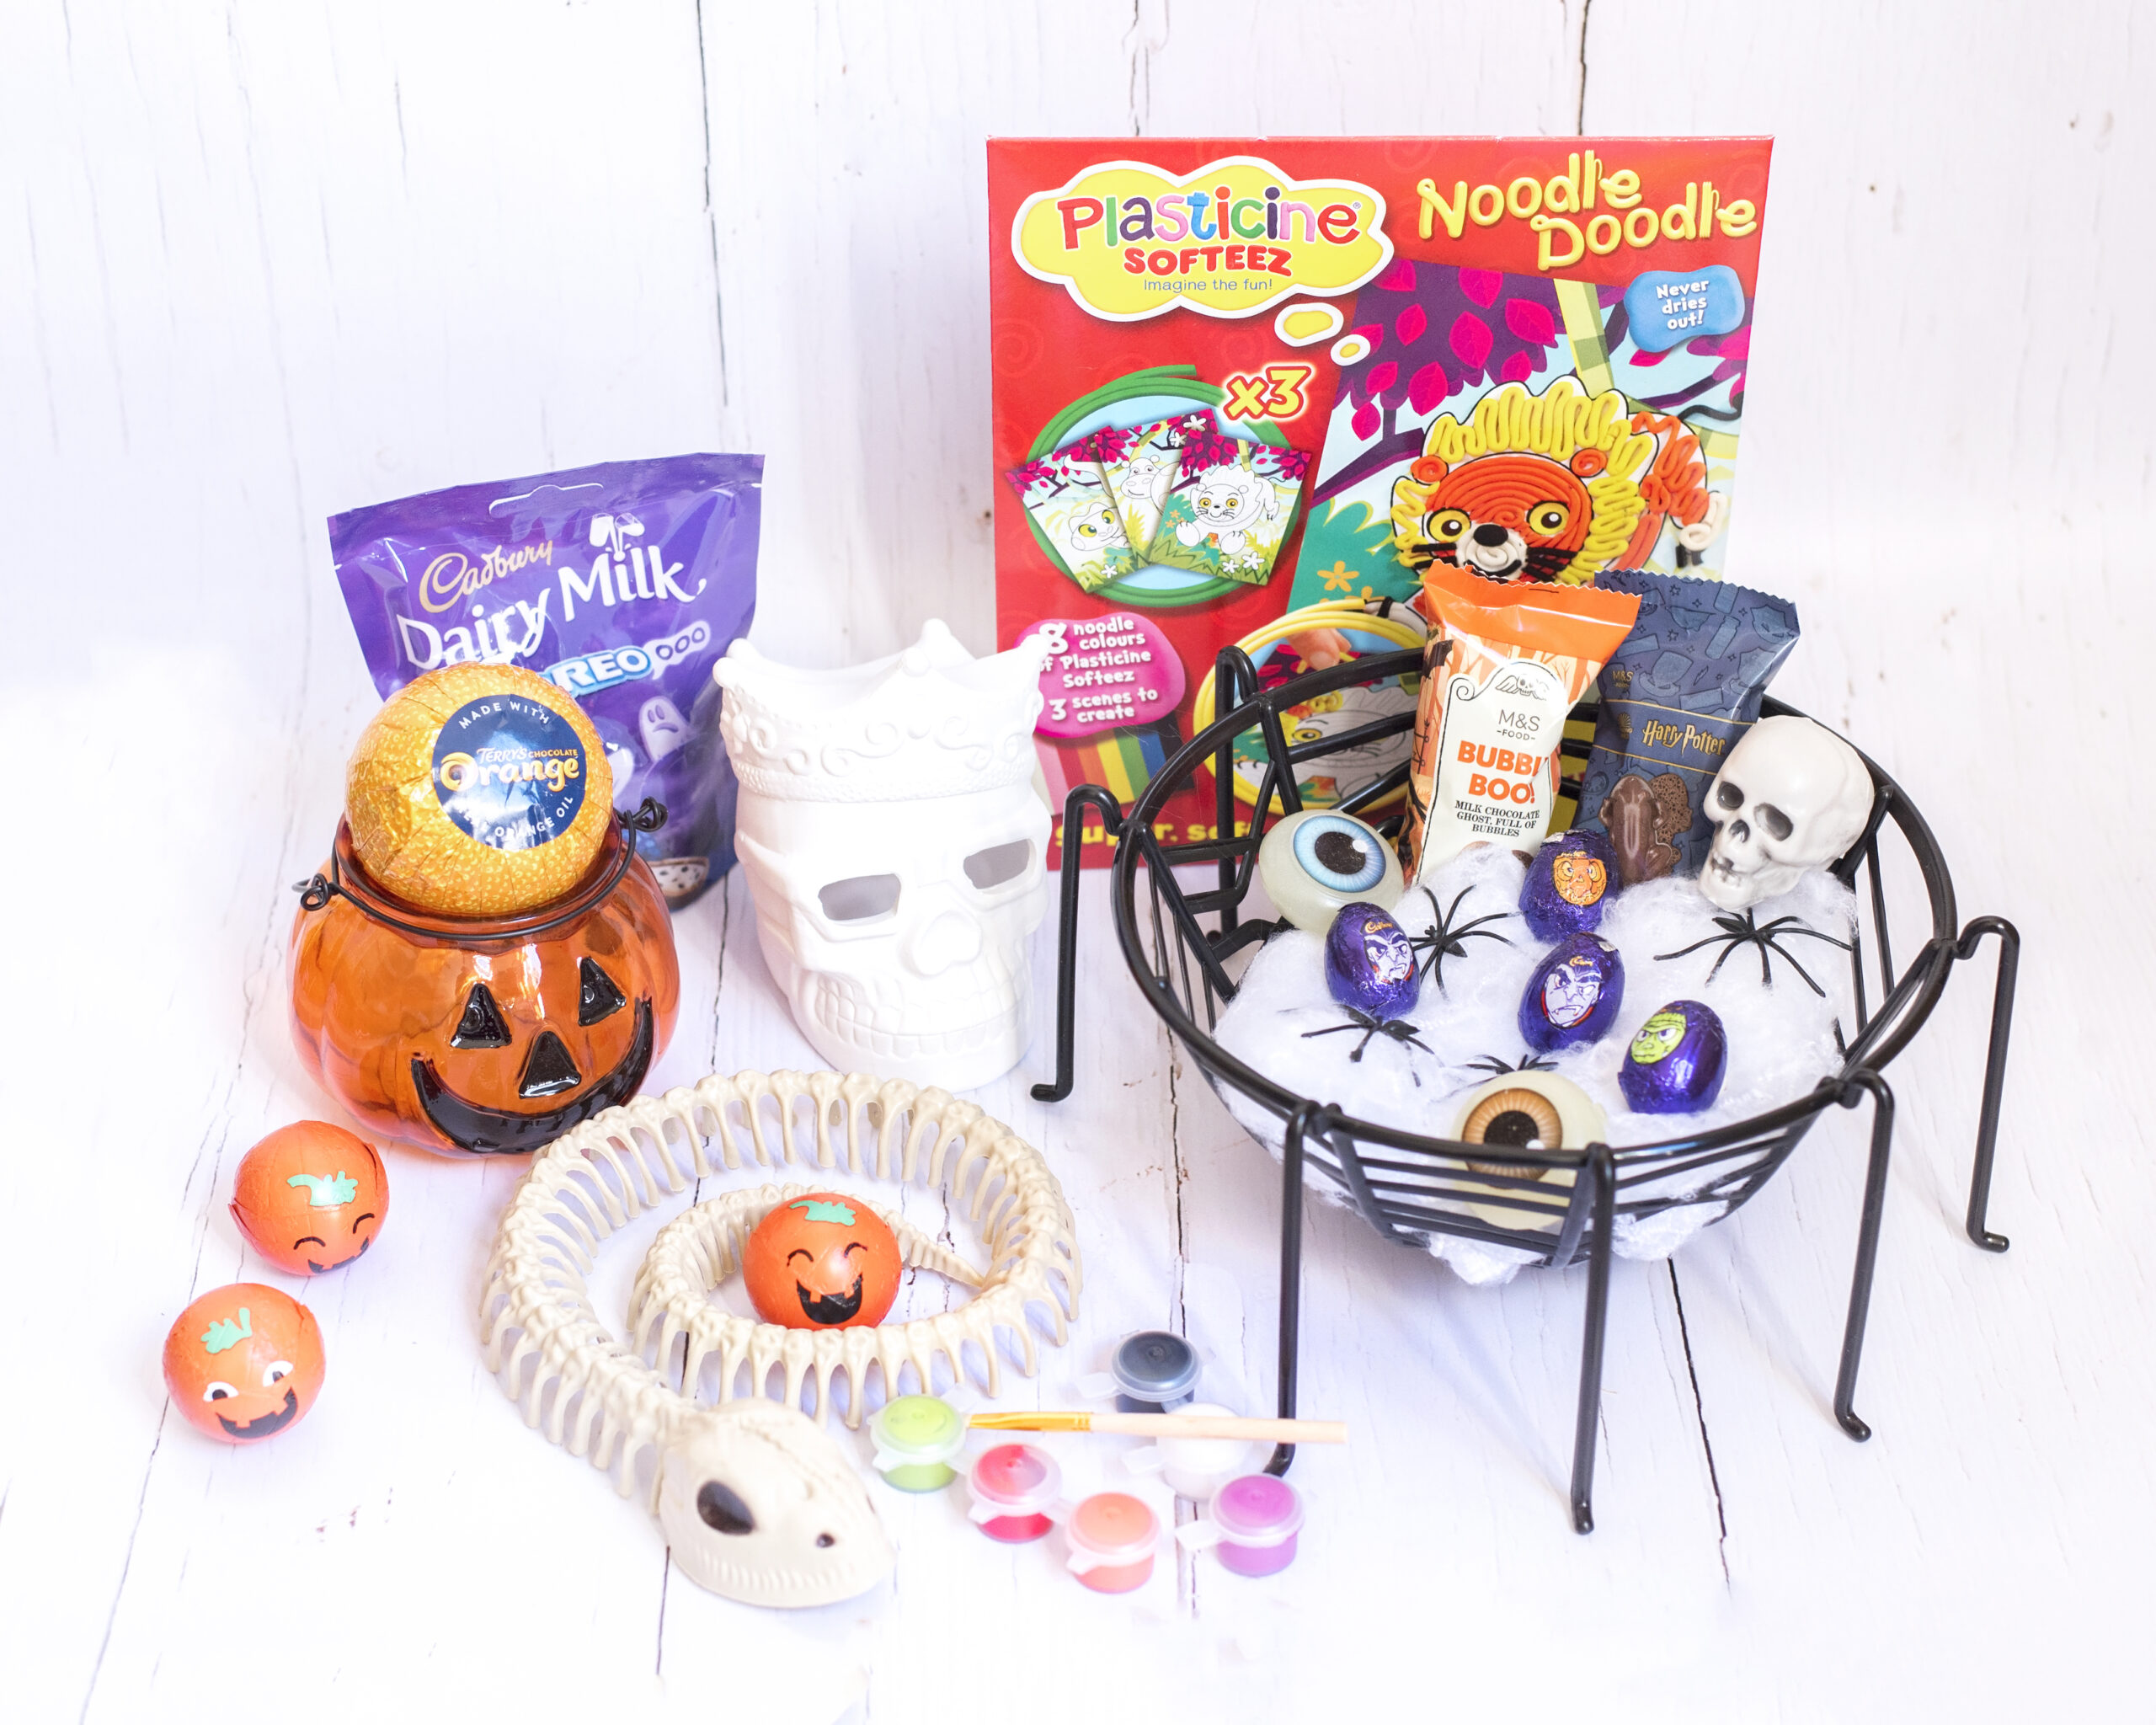 What Are Boo Baskets?